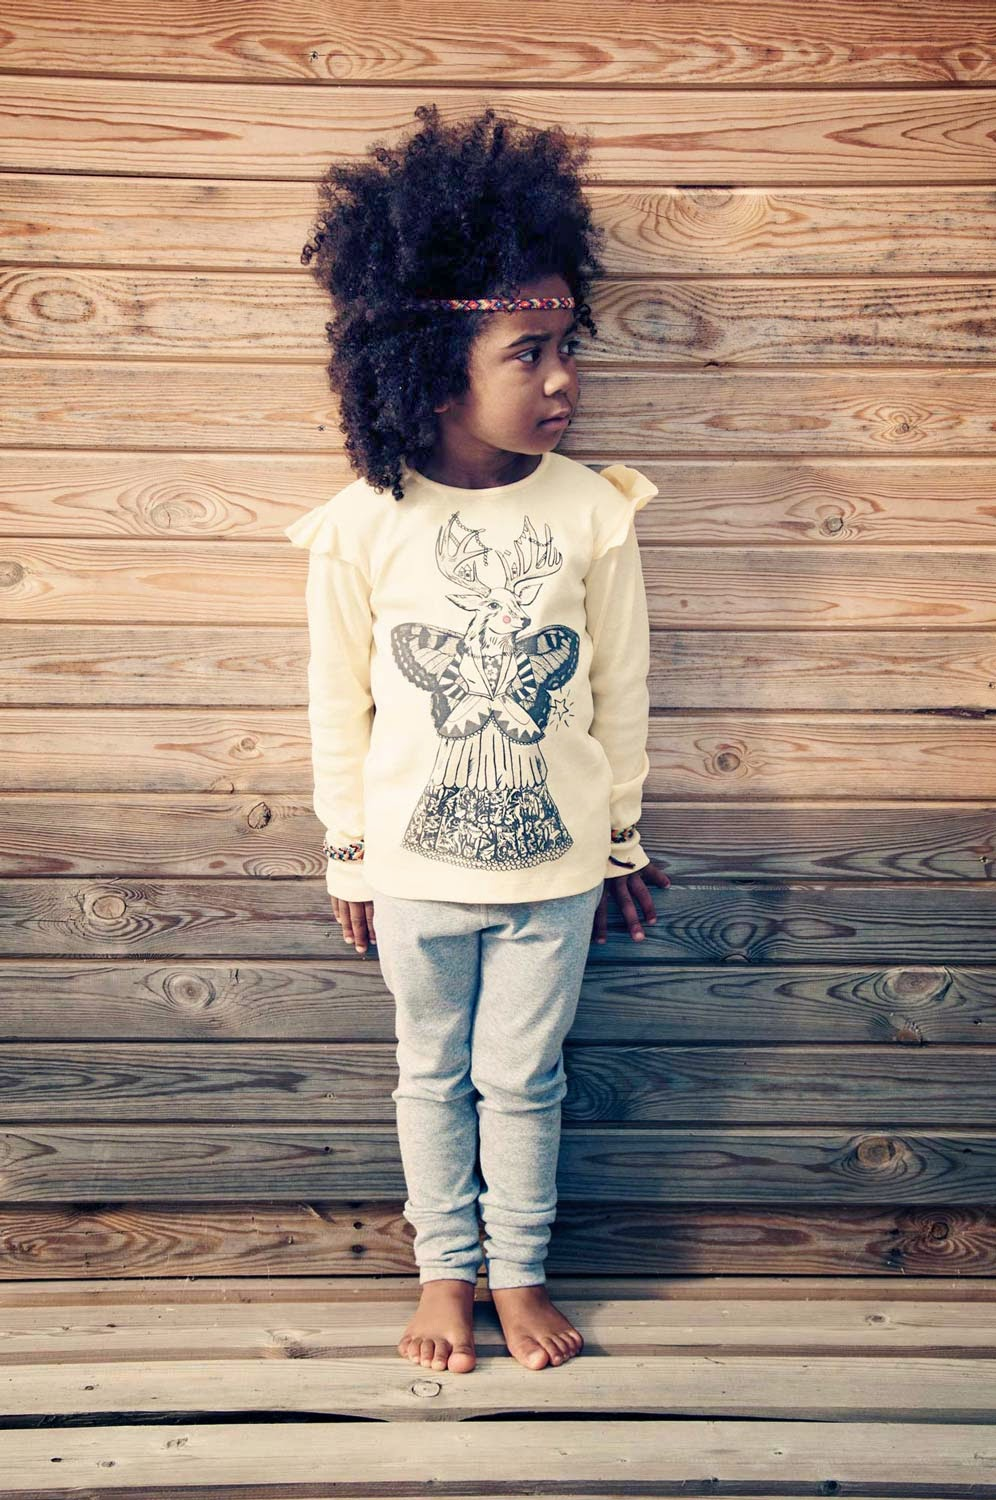 Unique prints by Hebe for spring 2014 kidswear collection